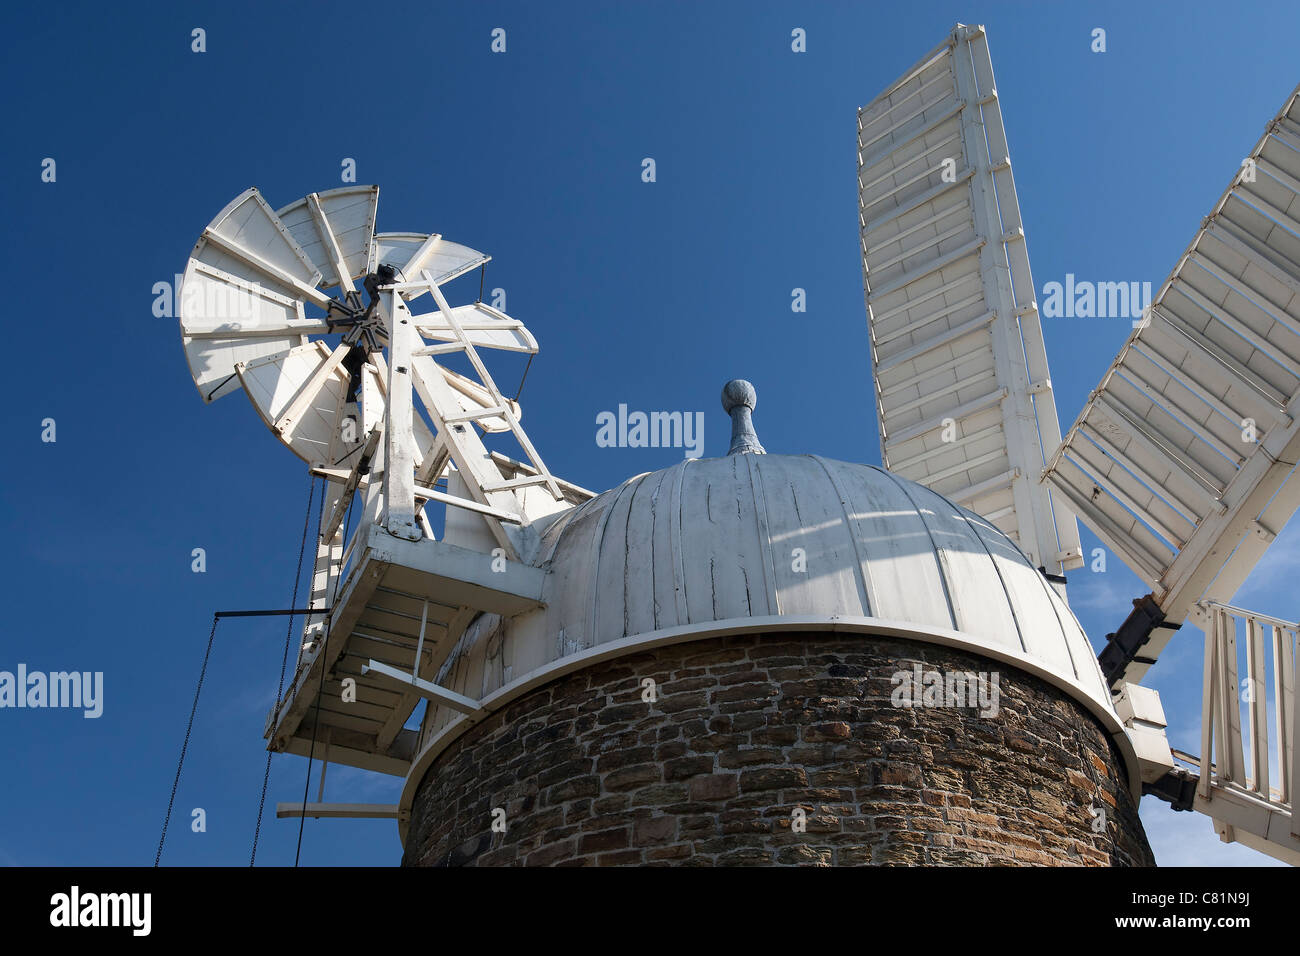 Windmill vane and sails from Heage Windmill, Derbyshire, England, the only working stone 6 sail windmill in the - Stock Image